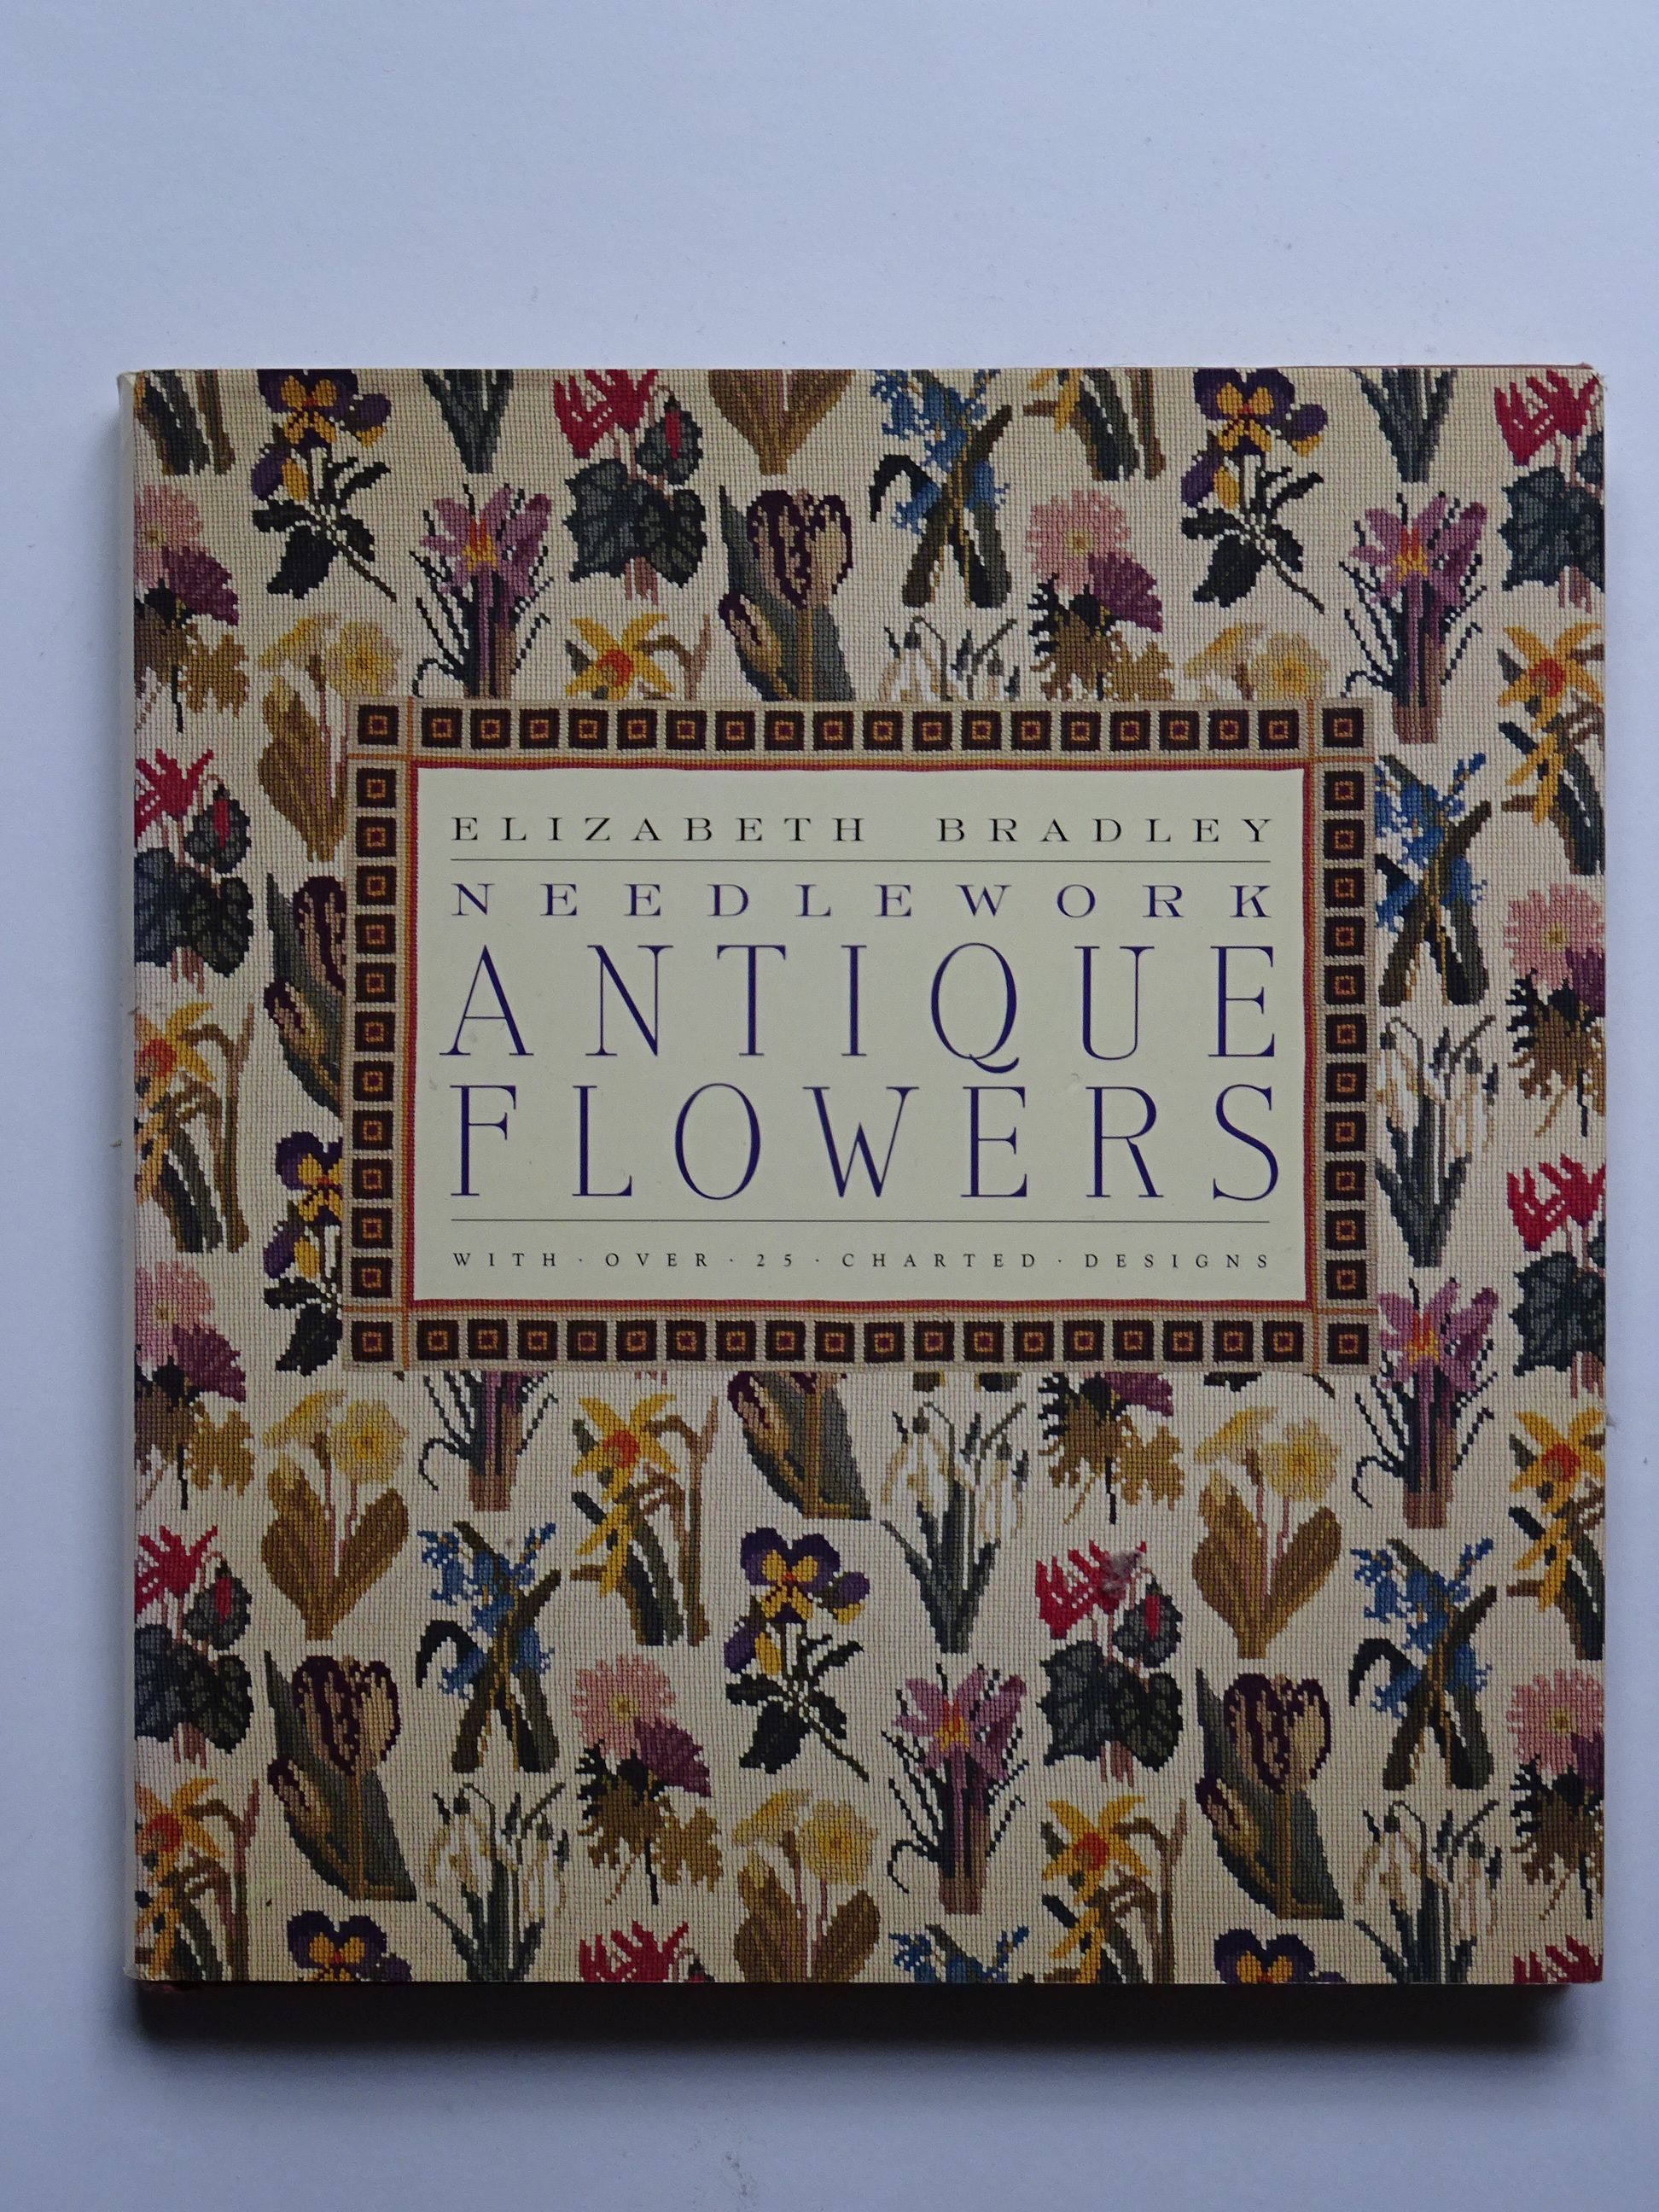 Bradley, Elizabeth - Needlework Antique Flowers